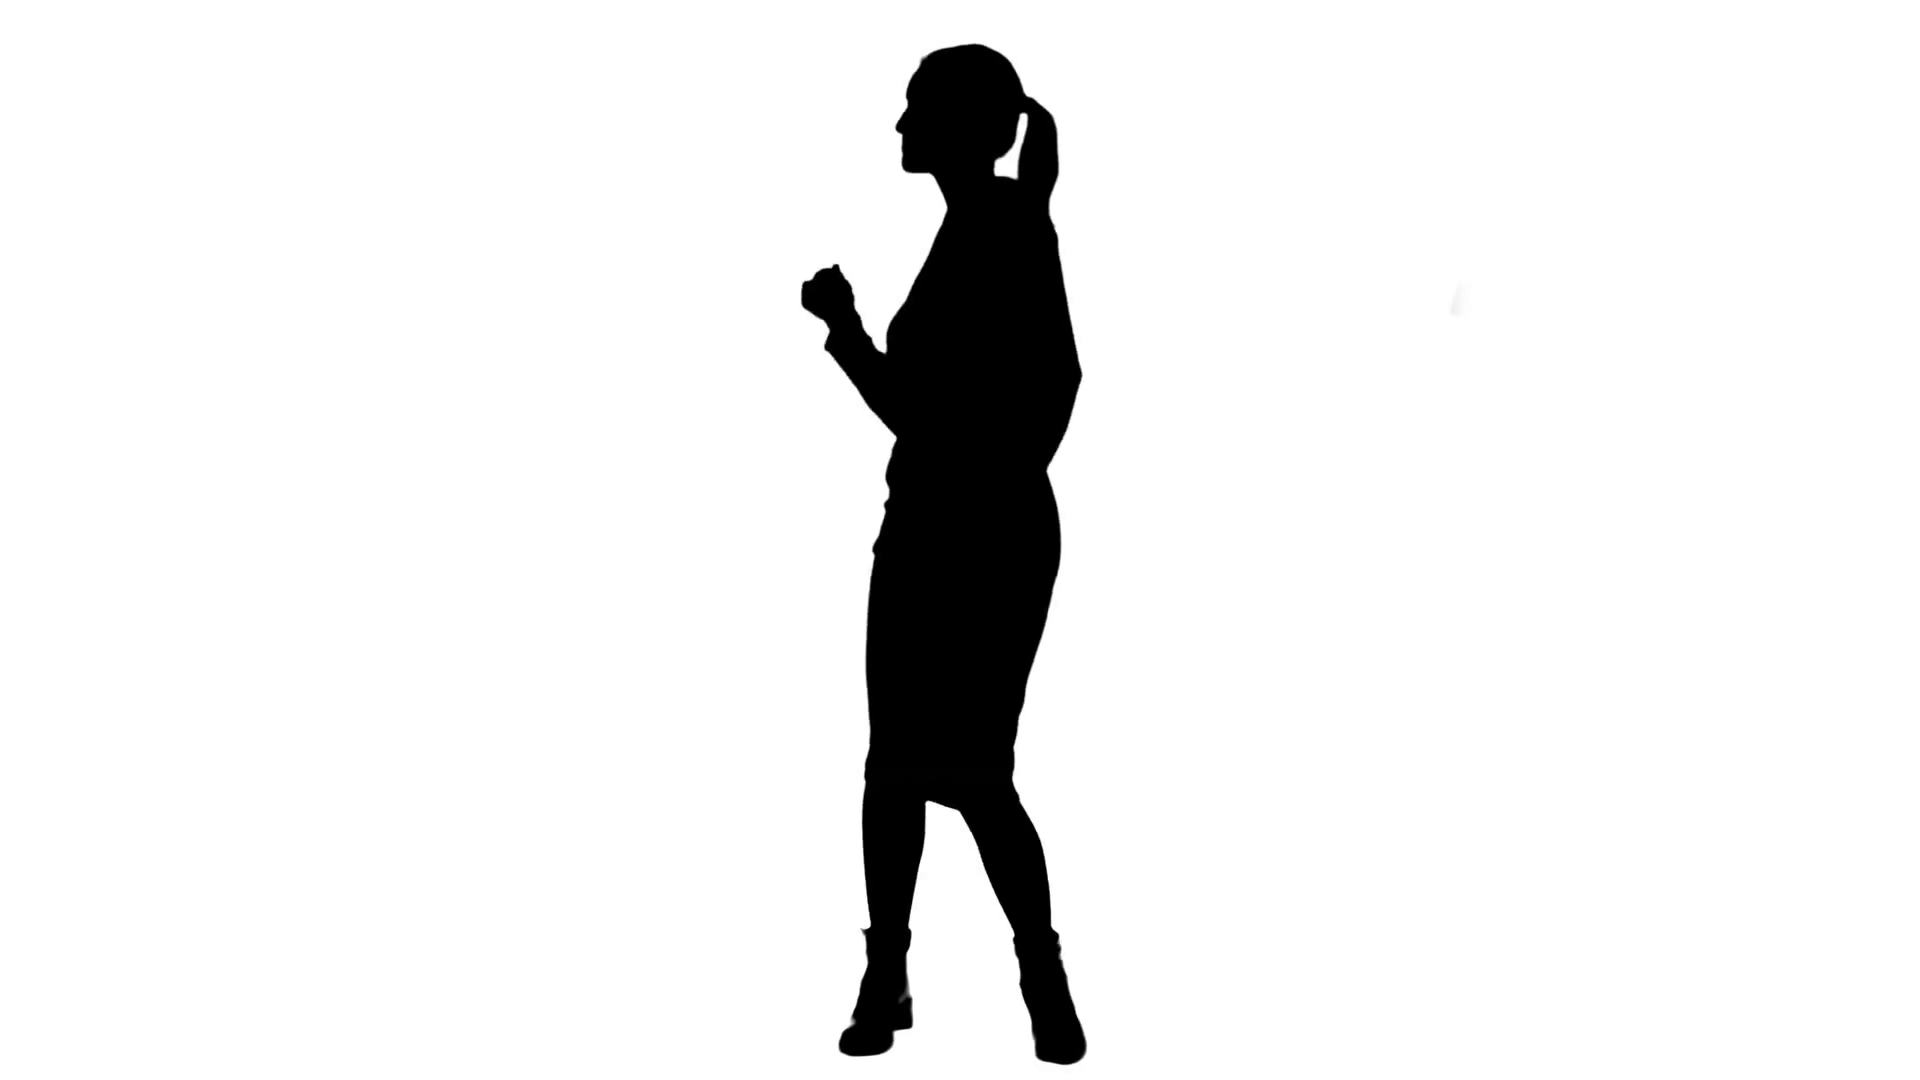 business woman silhouette business female silhouette business woman silhouette png silhouette business woman